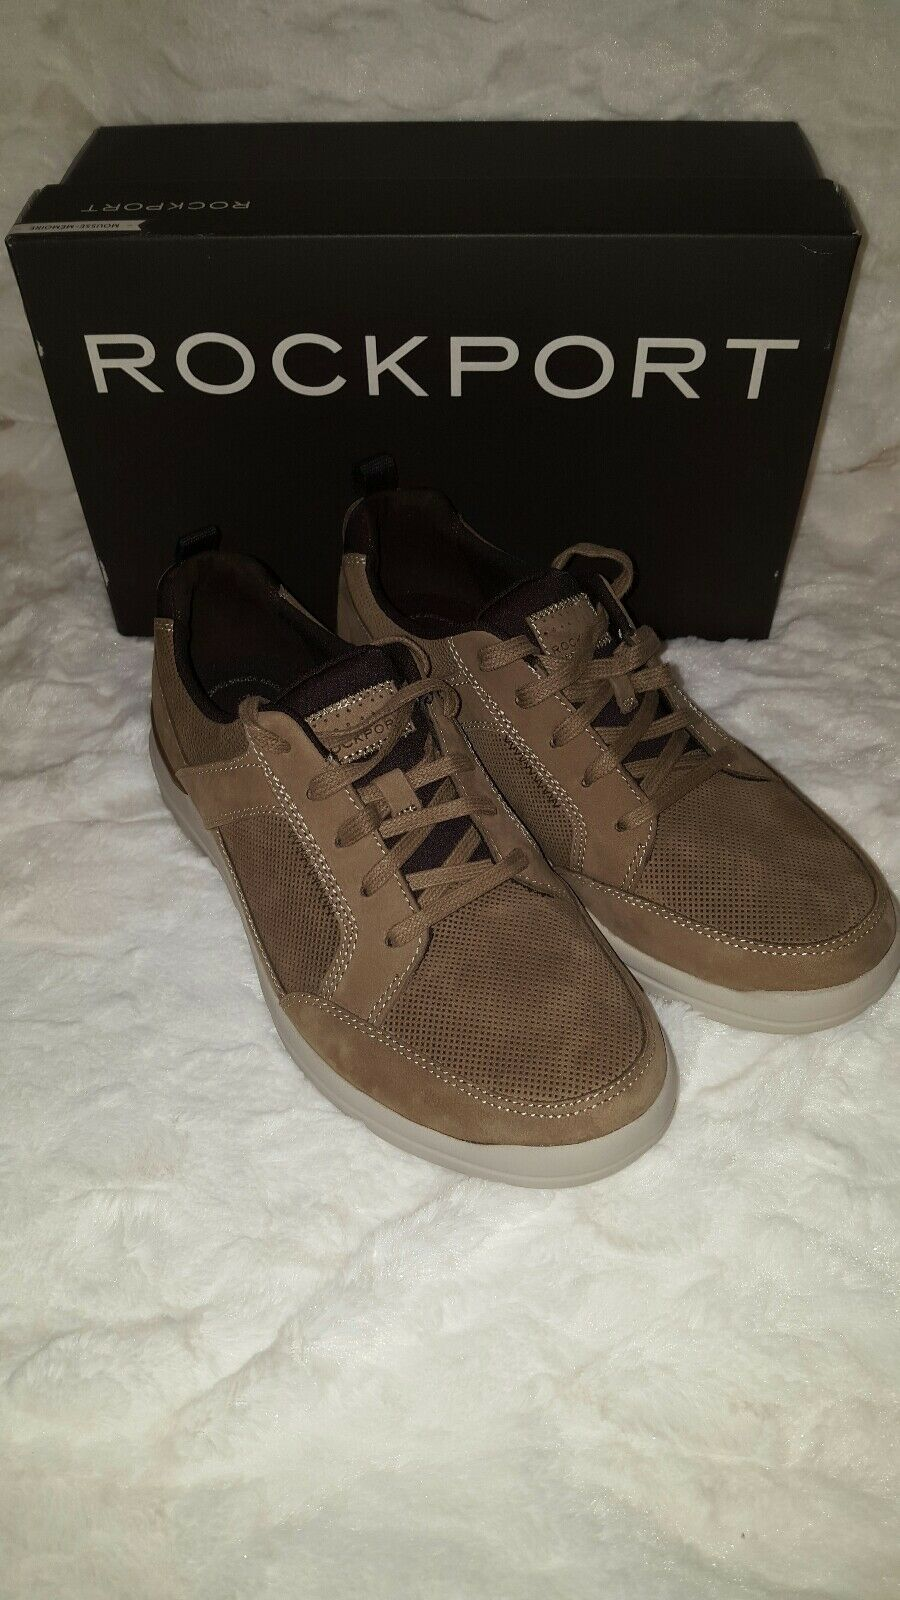 Homme Rockport City Edge Lacets paniers Taupe Nubuck paniers